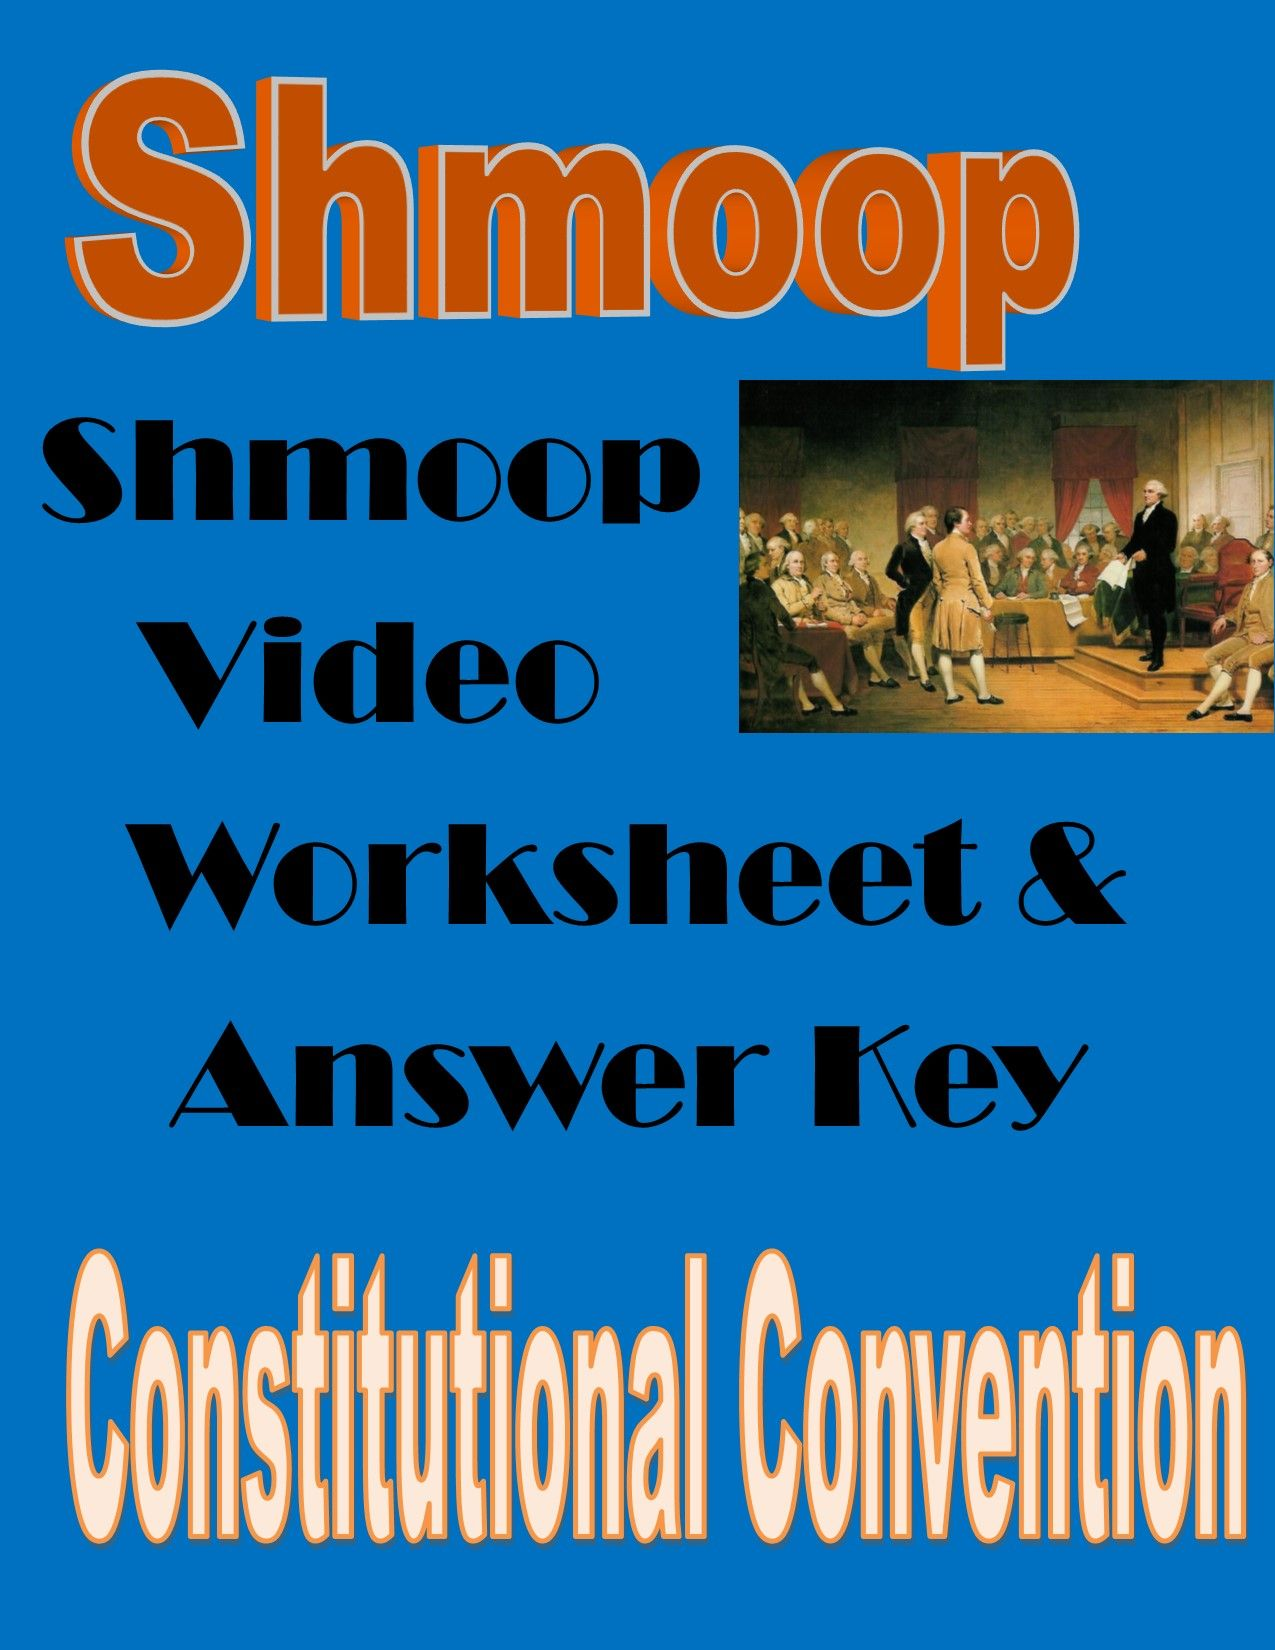 Constitutional Convention Shmoop Video Worksheet